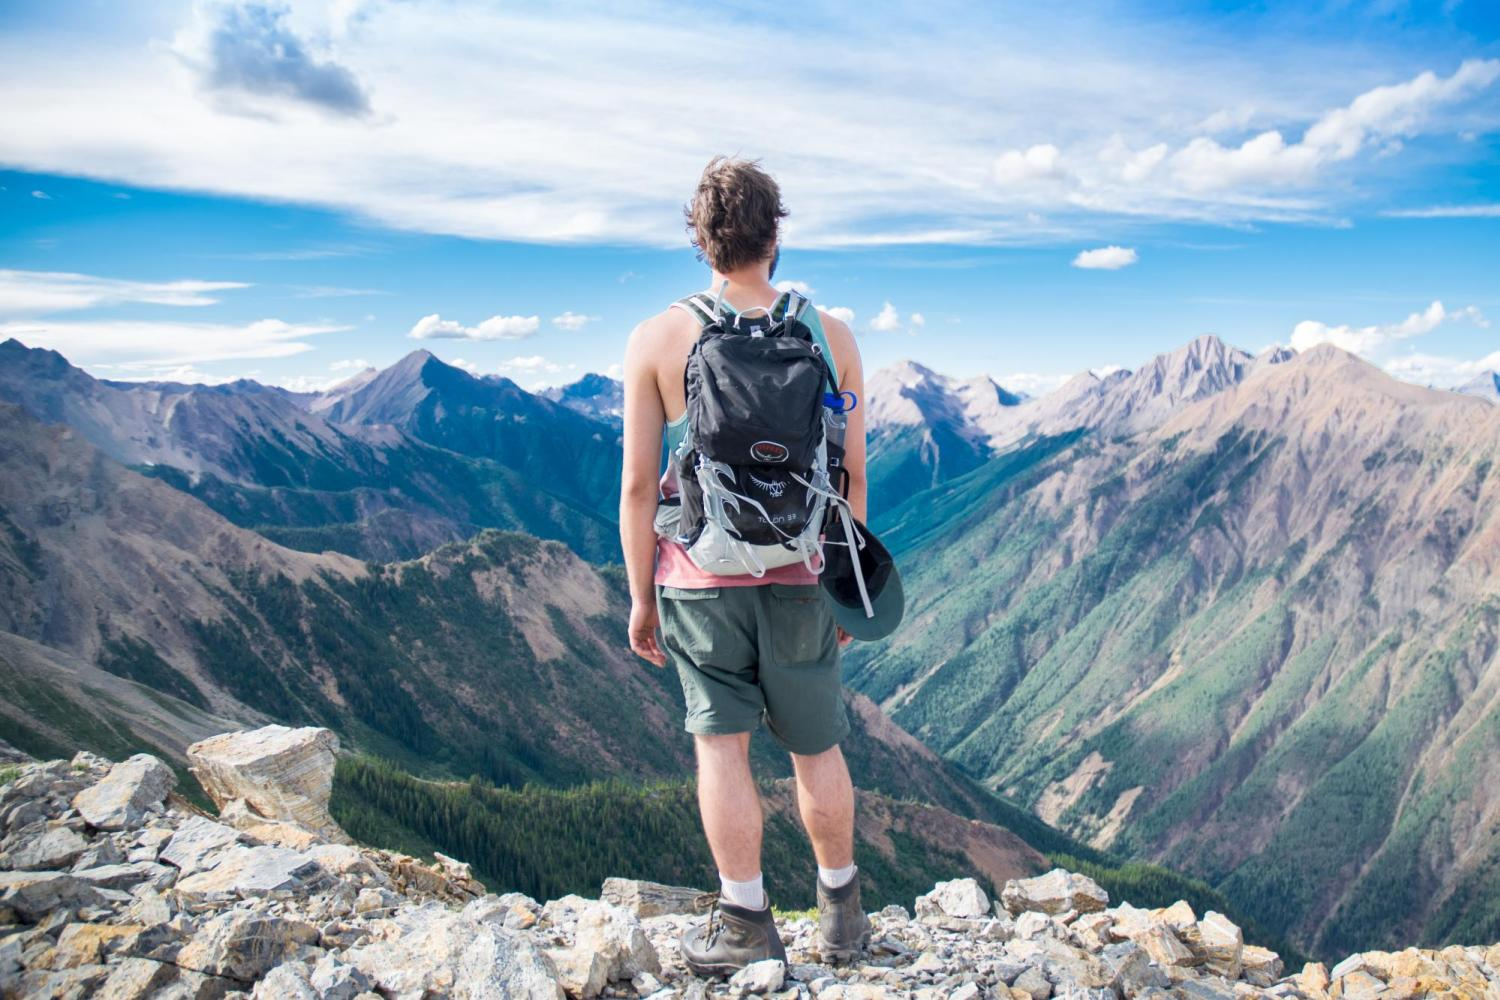 Guy looking out over the mountains